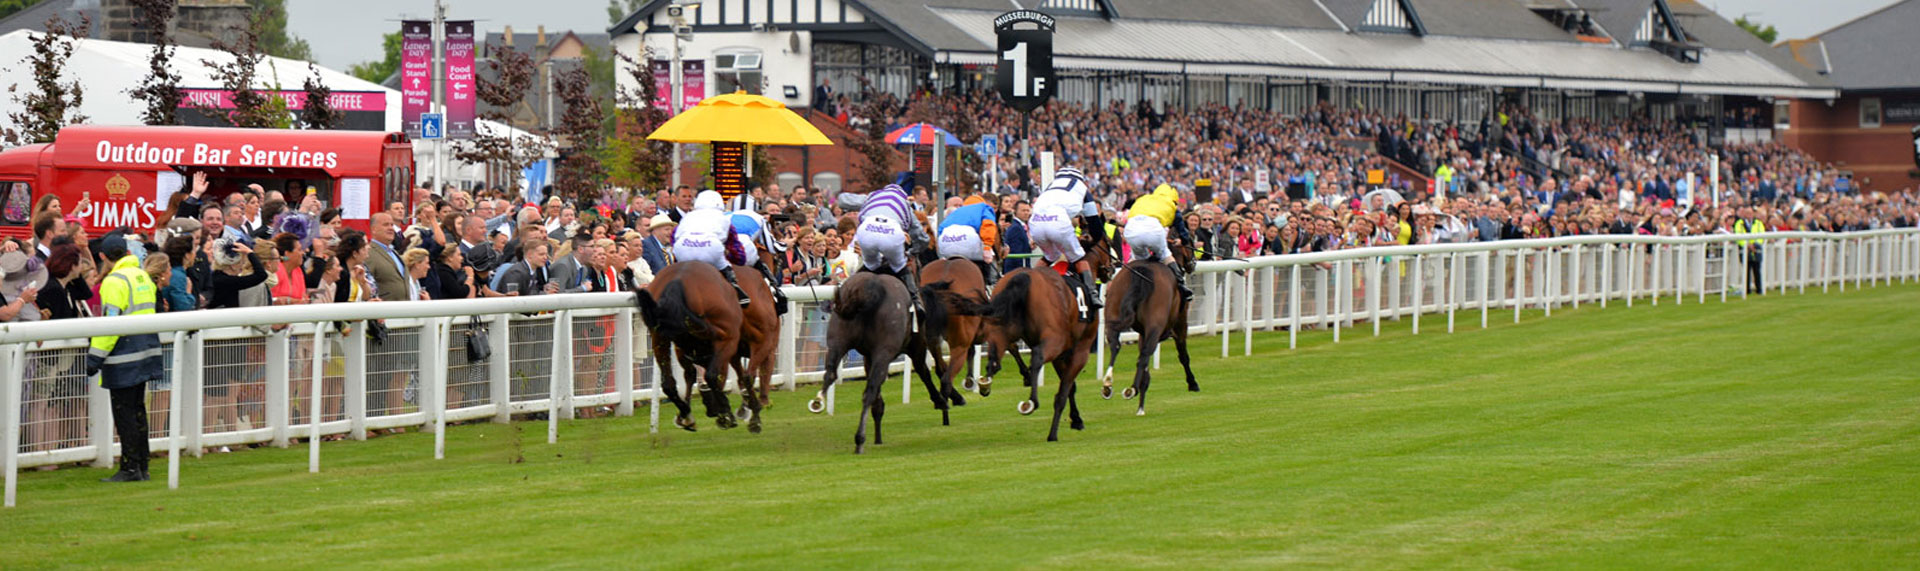 We are proud to be one of the five racecourses in Scotland